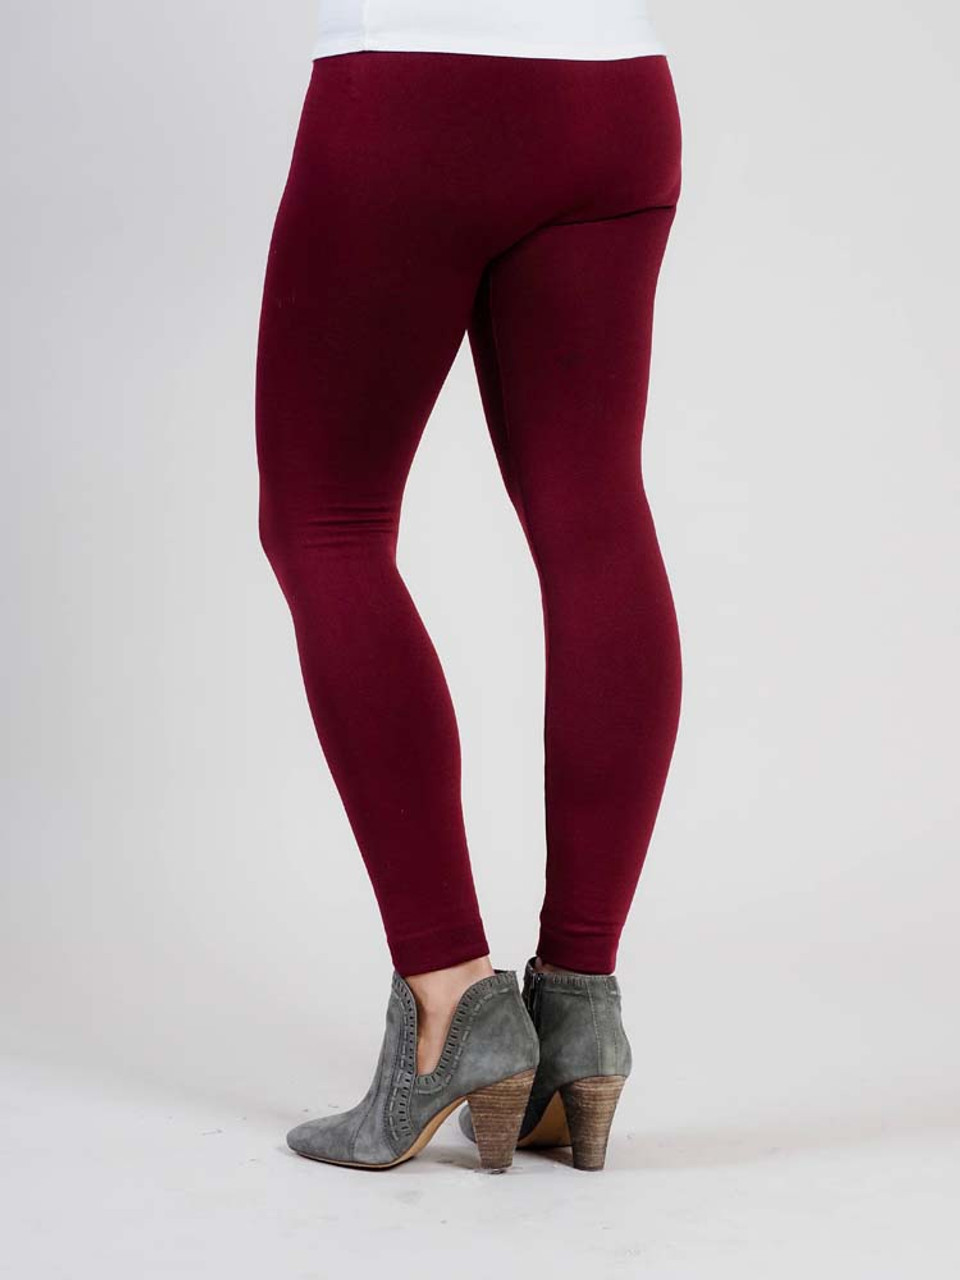 """Burgundy Gray Comfortable and versitable fleece-lined leggings, breathable fabric, smooth mid-rise fit, seamless, flattering 4"""" waistband, full length cut with banded ankle"""